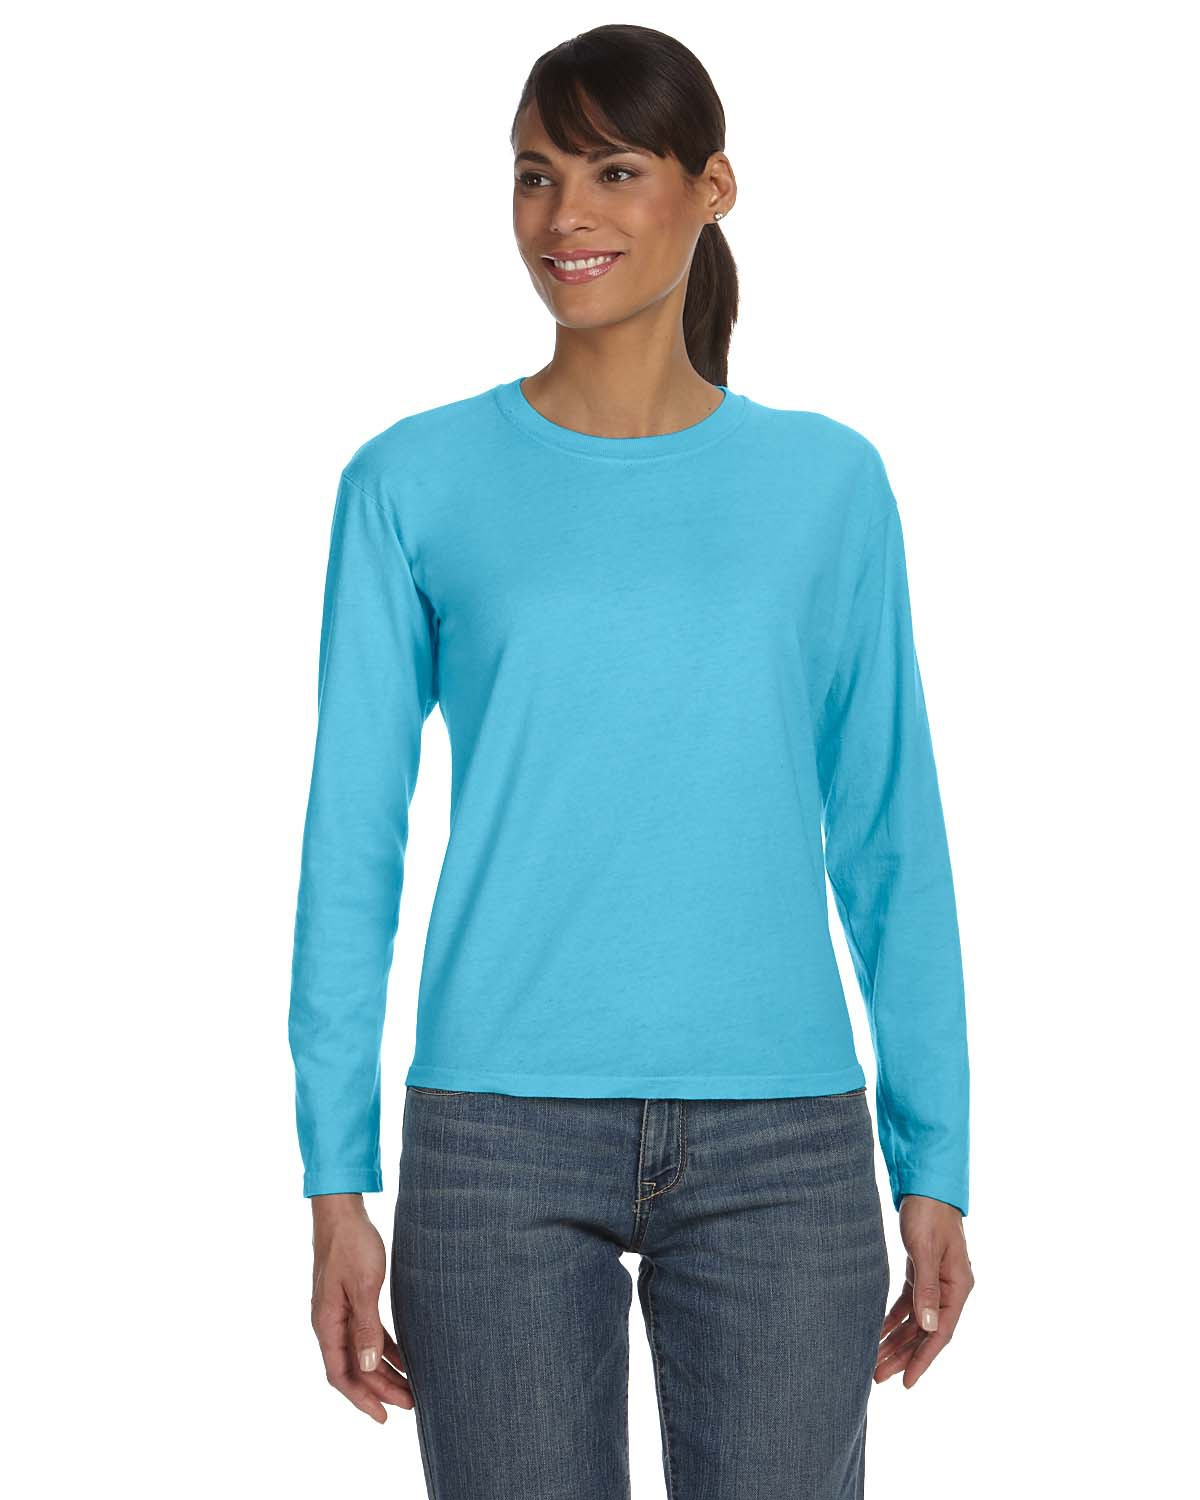 Comfort Colors 3014 - Women's Garment Dyed Ringspun Long Sleeve T-Shirt